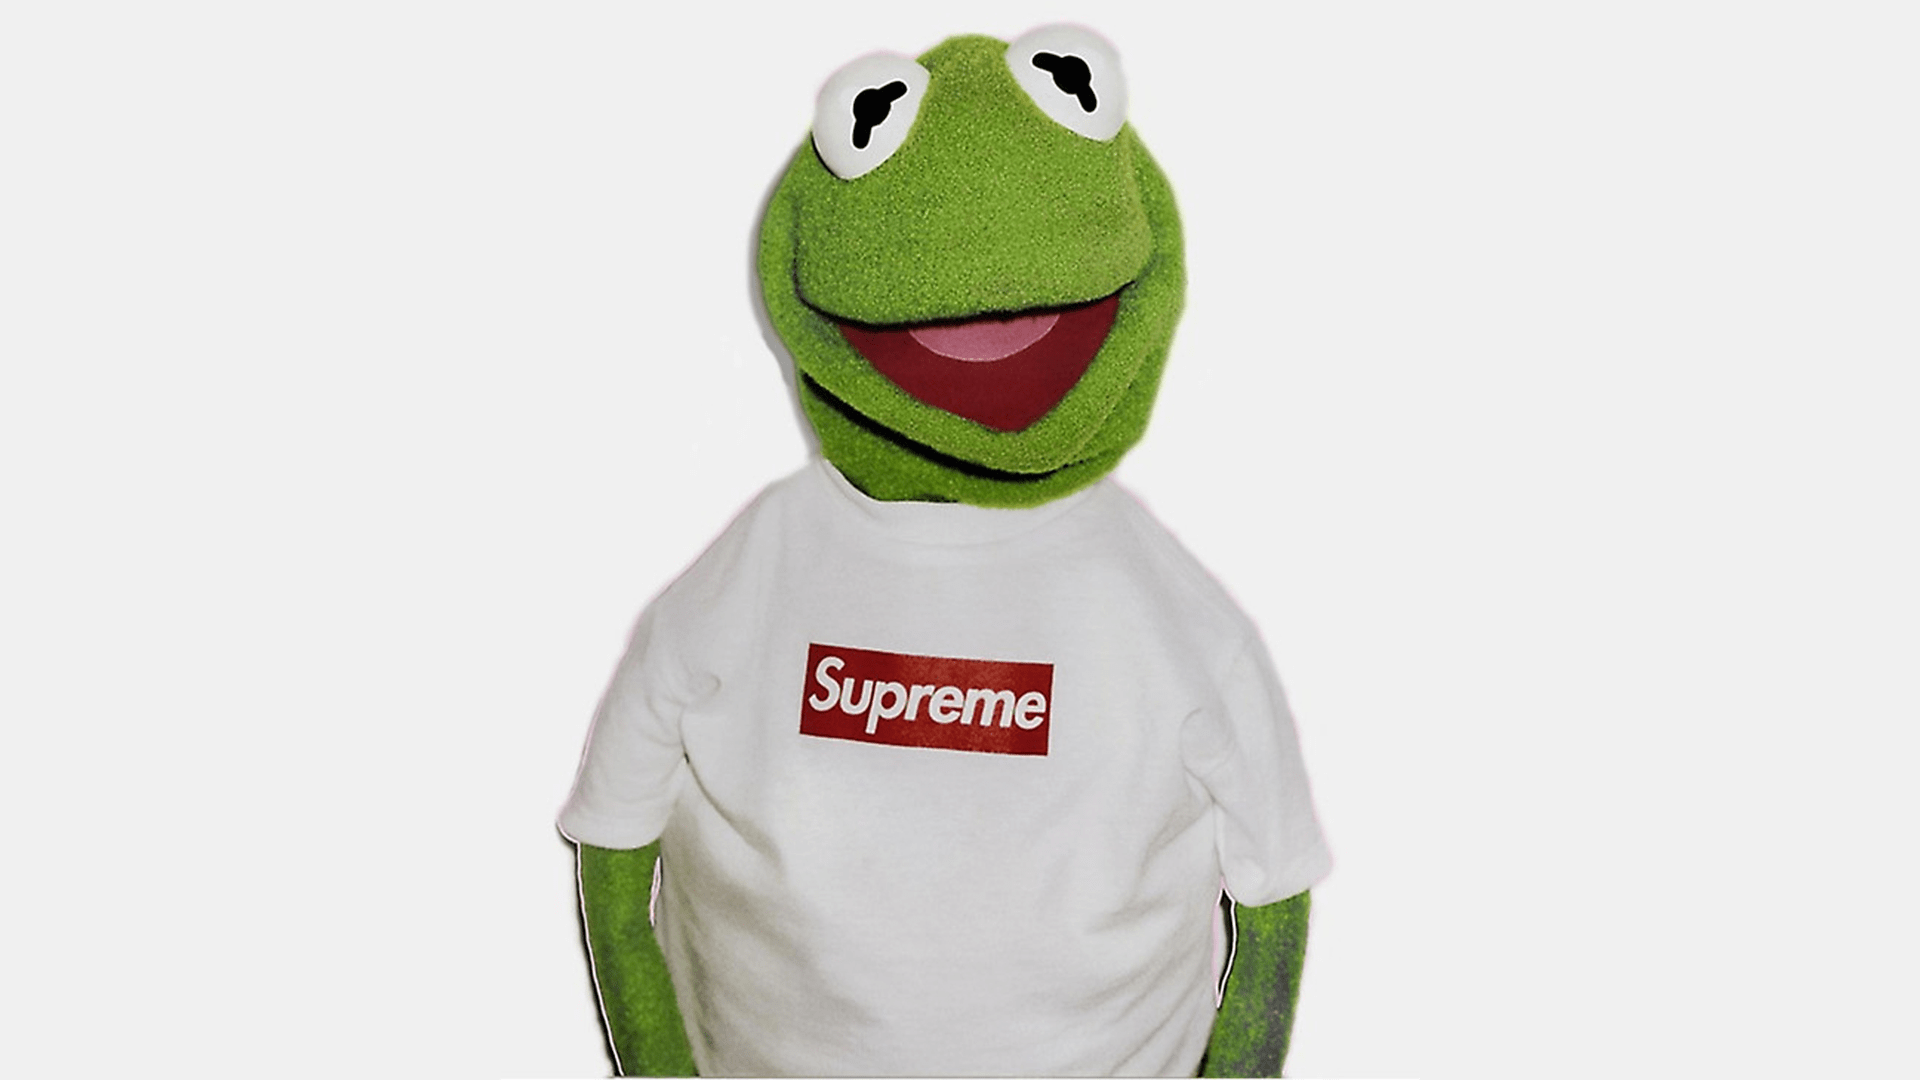 Kermit Supreme Wallpaper  1920x1080   Couldnt find one so made one     Kermit Supreme Wallpaper  1920x1080   Couldnt find one so made one myself